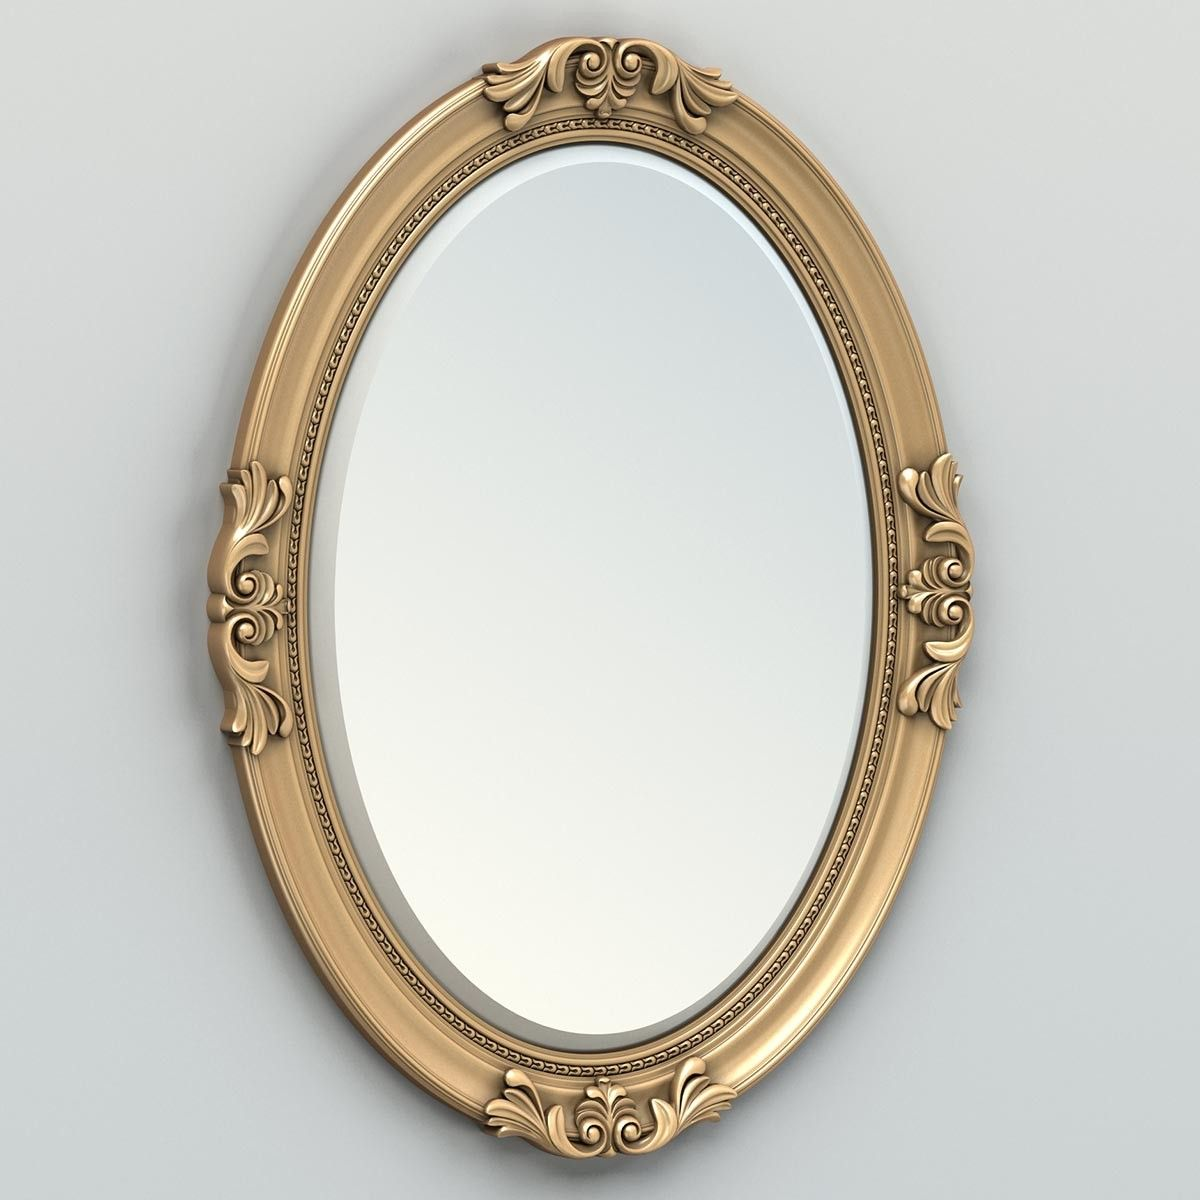 carved oval mirror frame 3d max | Mirror frames, Oval ...